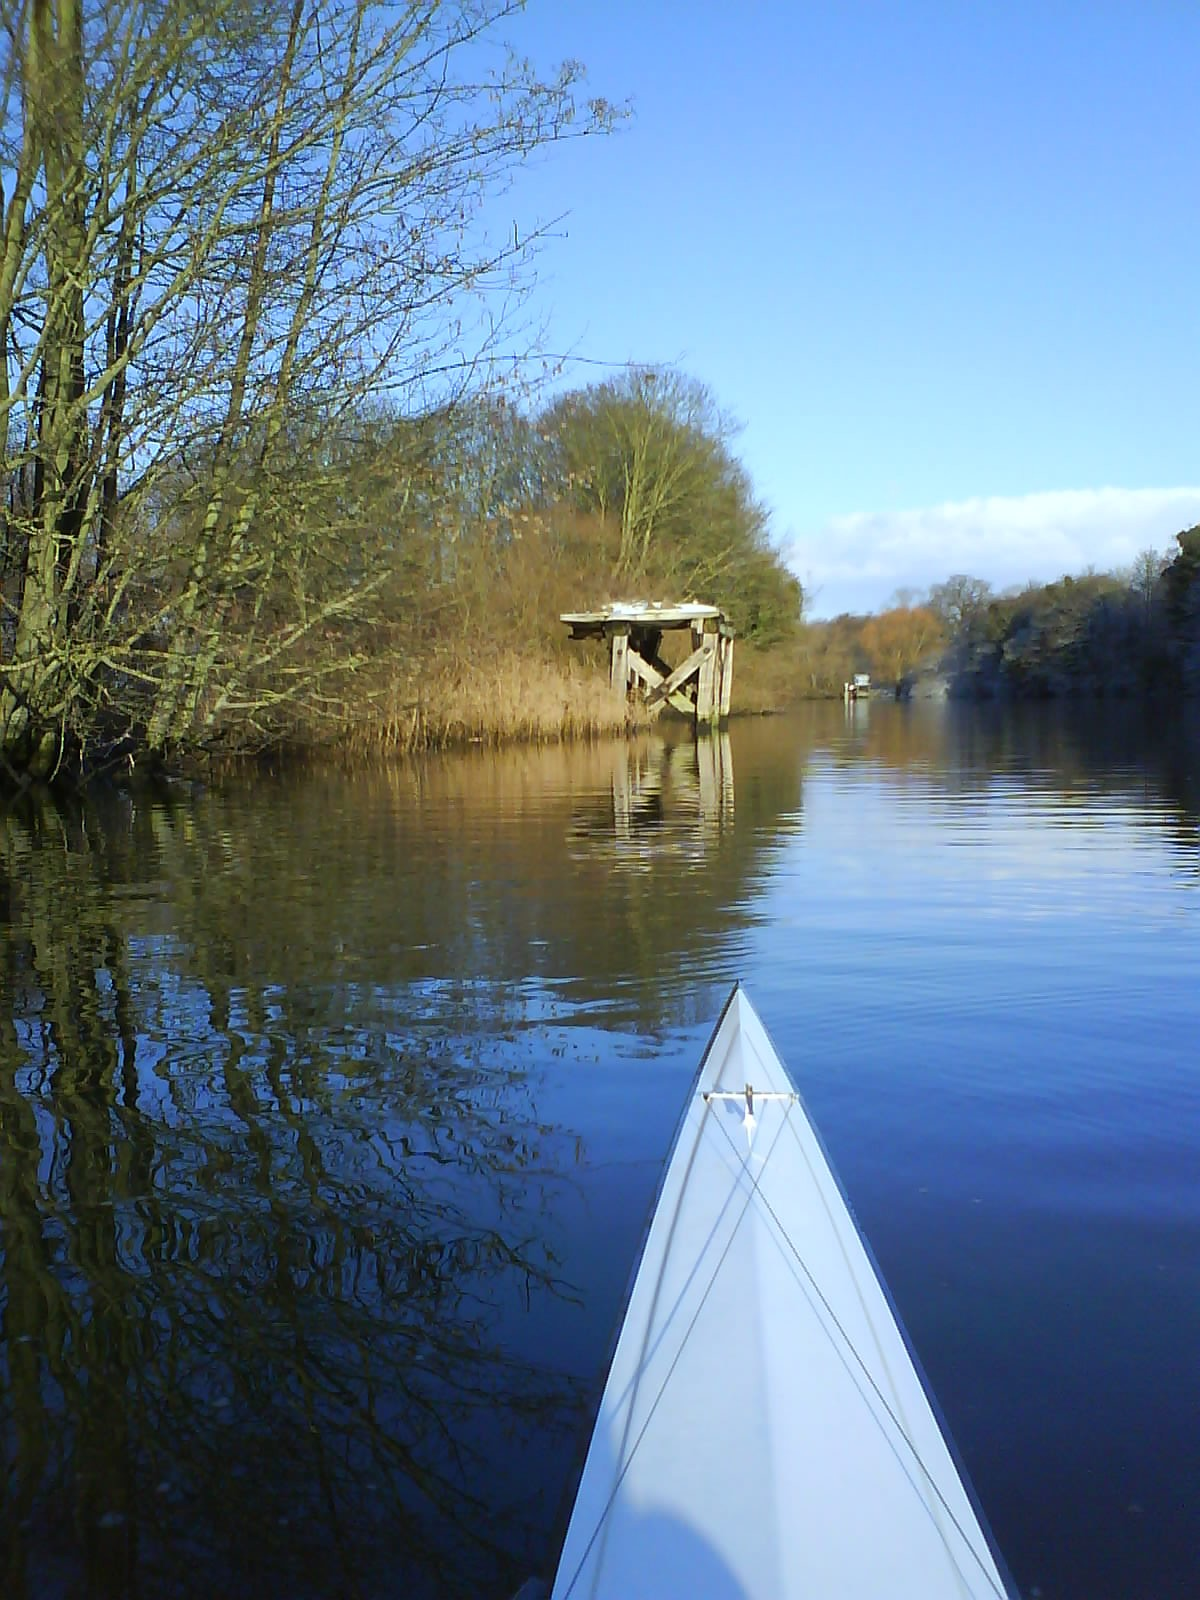 Rowing on The River Yare